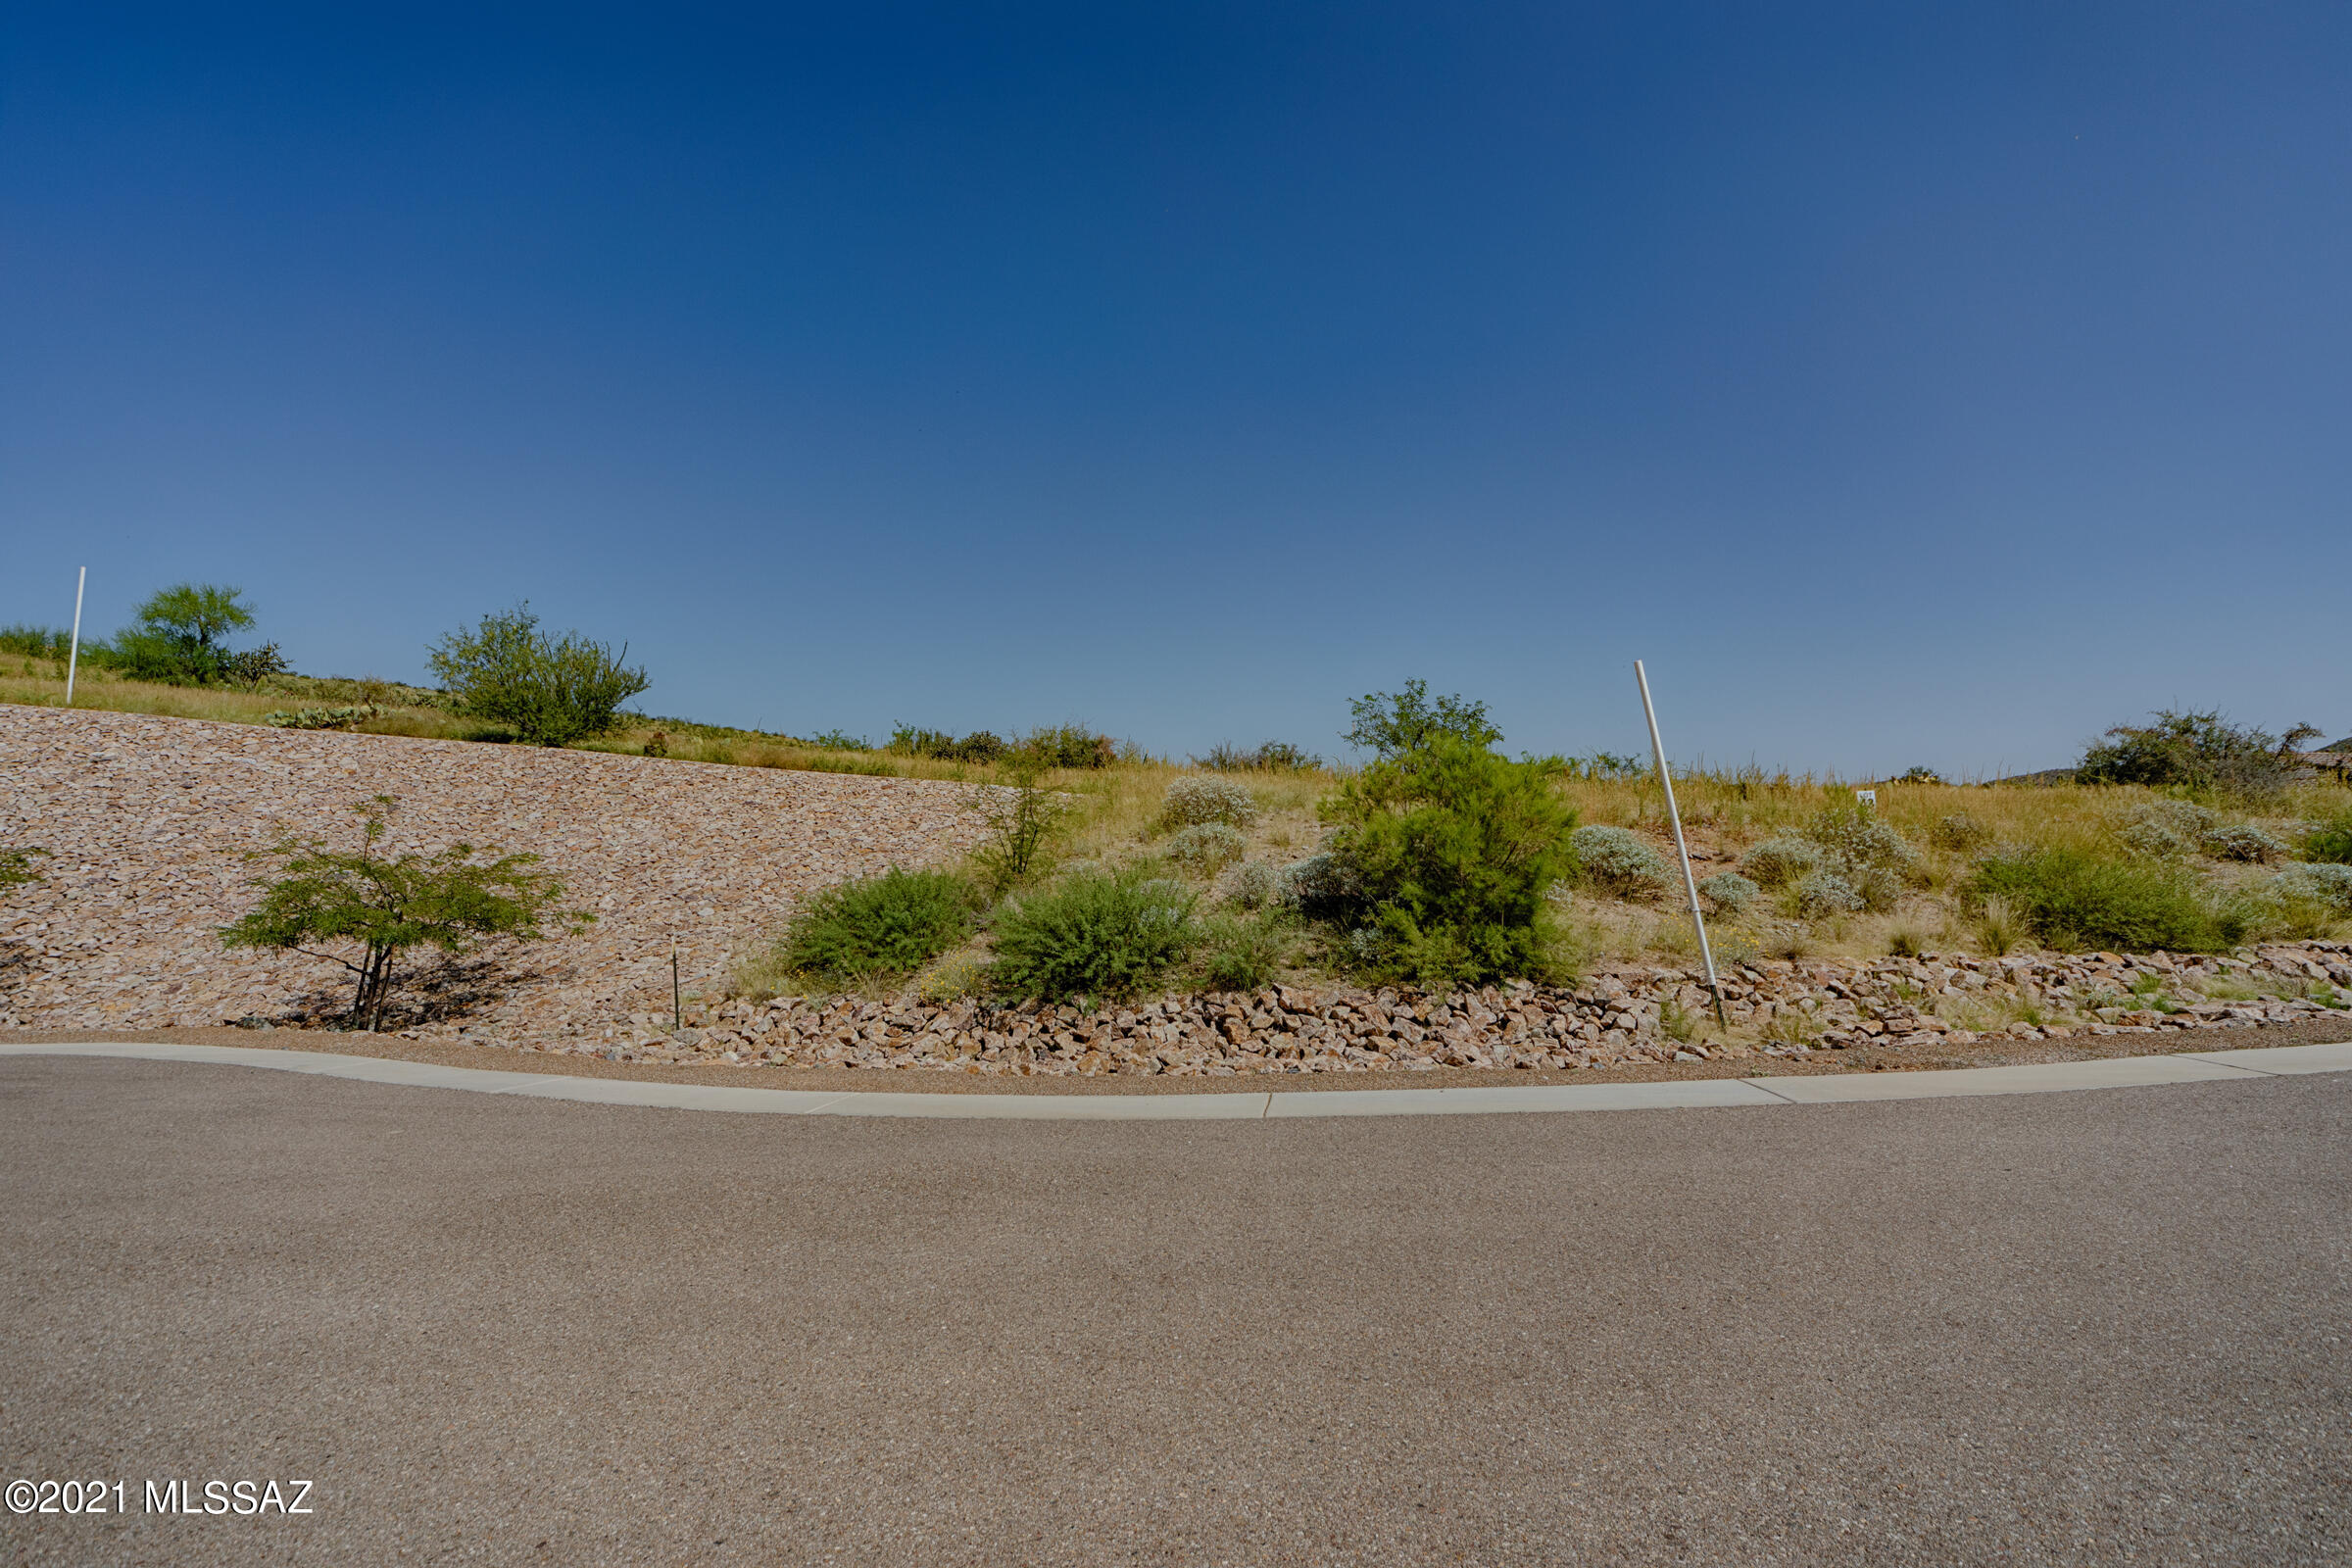 This 1.27 acre lot is located at the highest point of Sundance P{lace on the right side of the street and therefore has incredible views of the mountains to the east.